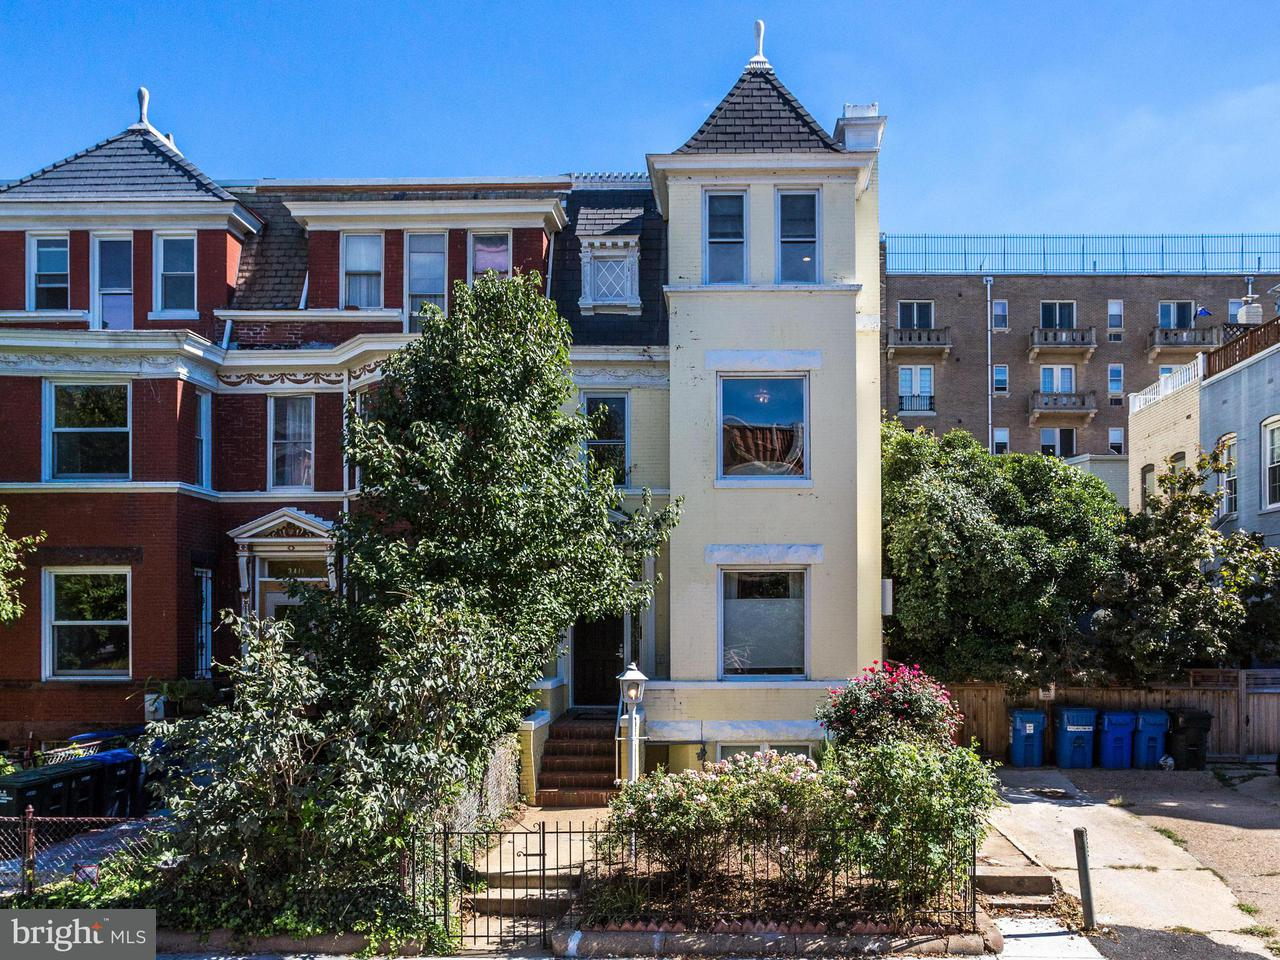 Townhouse for Sale at 3409 BROWN ST NW #4 3409 BROWN ST NW #4 Washington, District Of Columbia 20010 United States